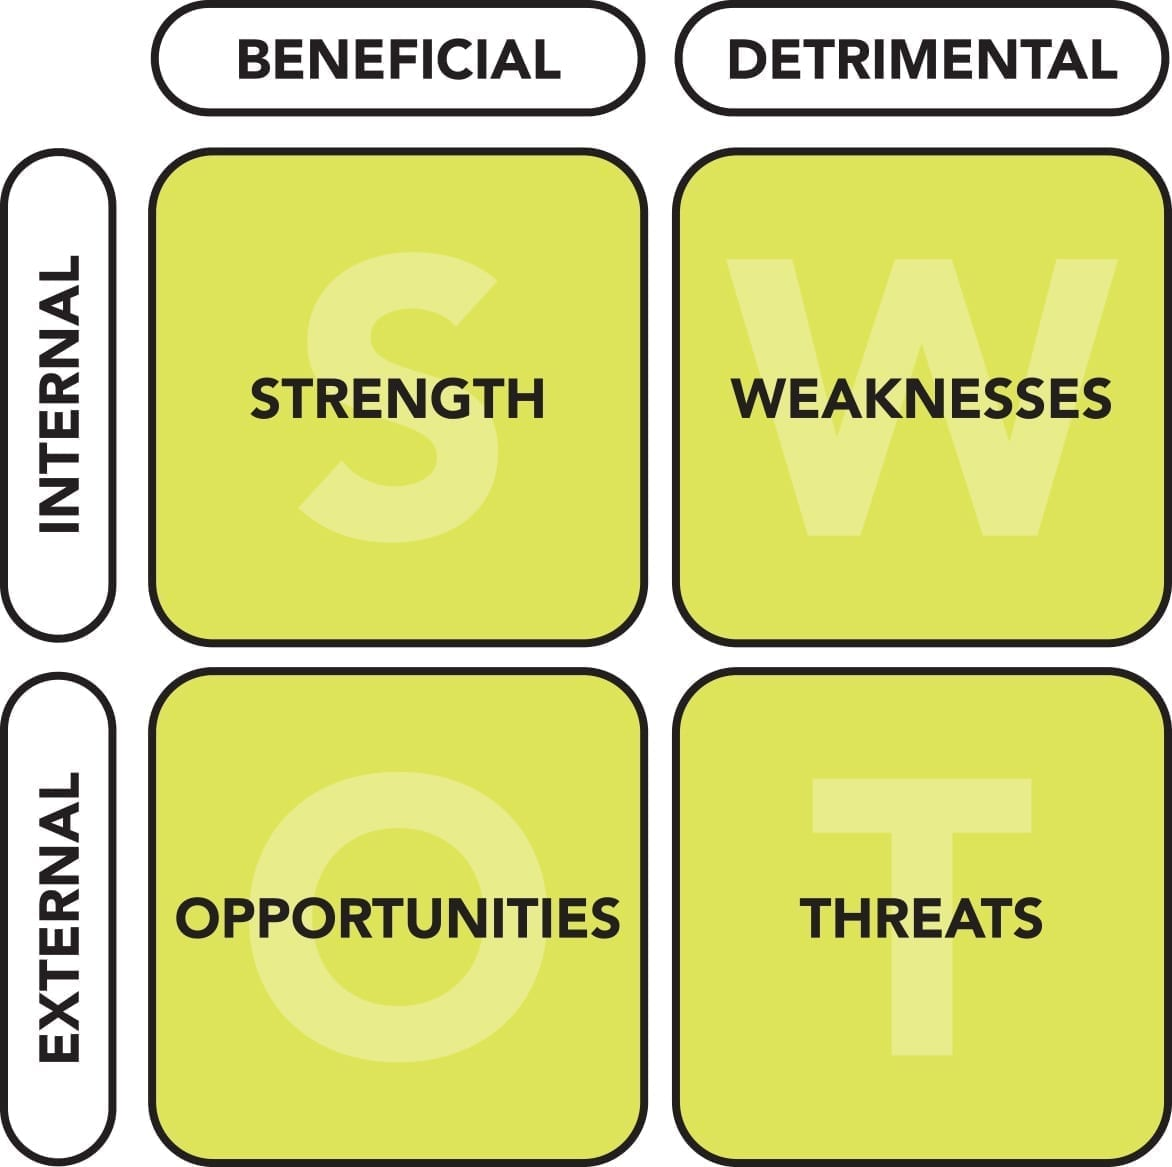 A SWOT analysis organized into a matrix designed to uncover organizational strengths, weaknesses, opportunities, and threats.